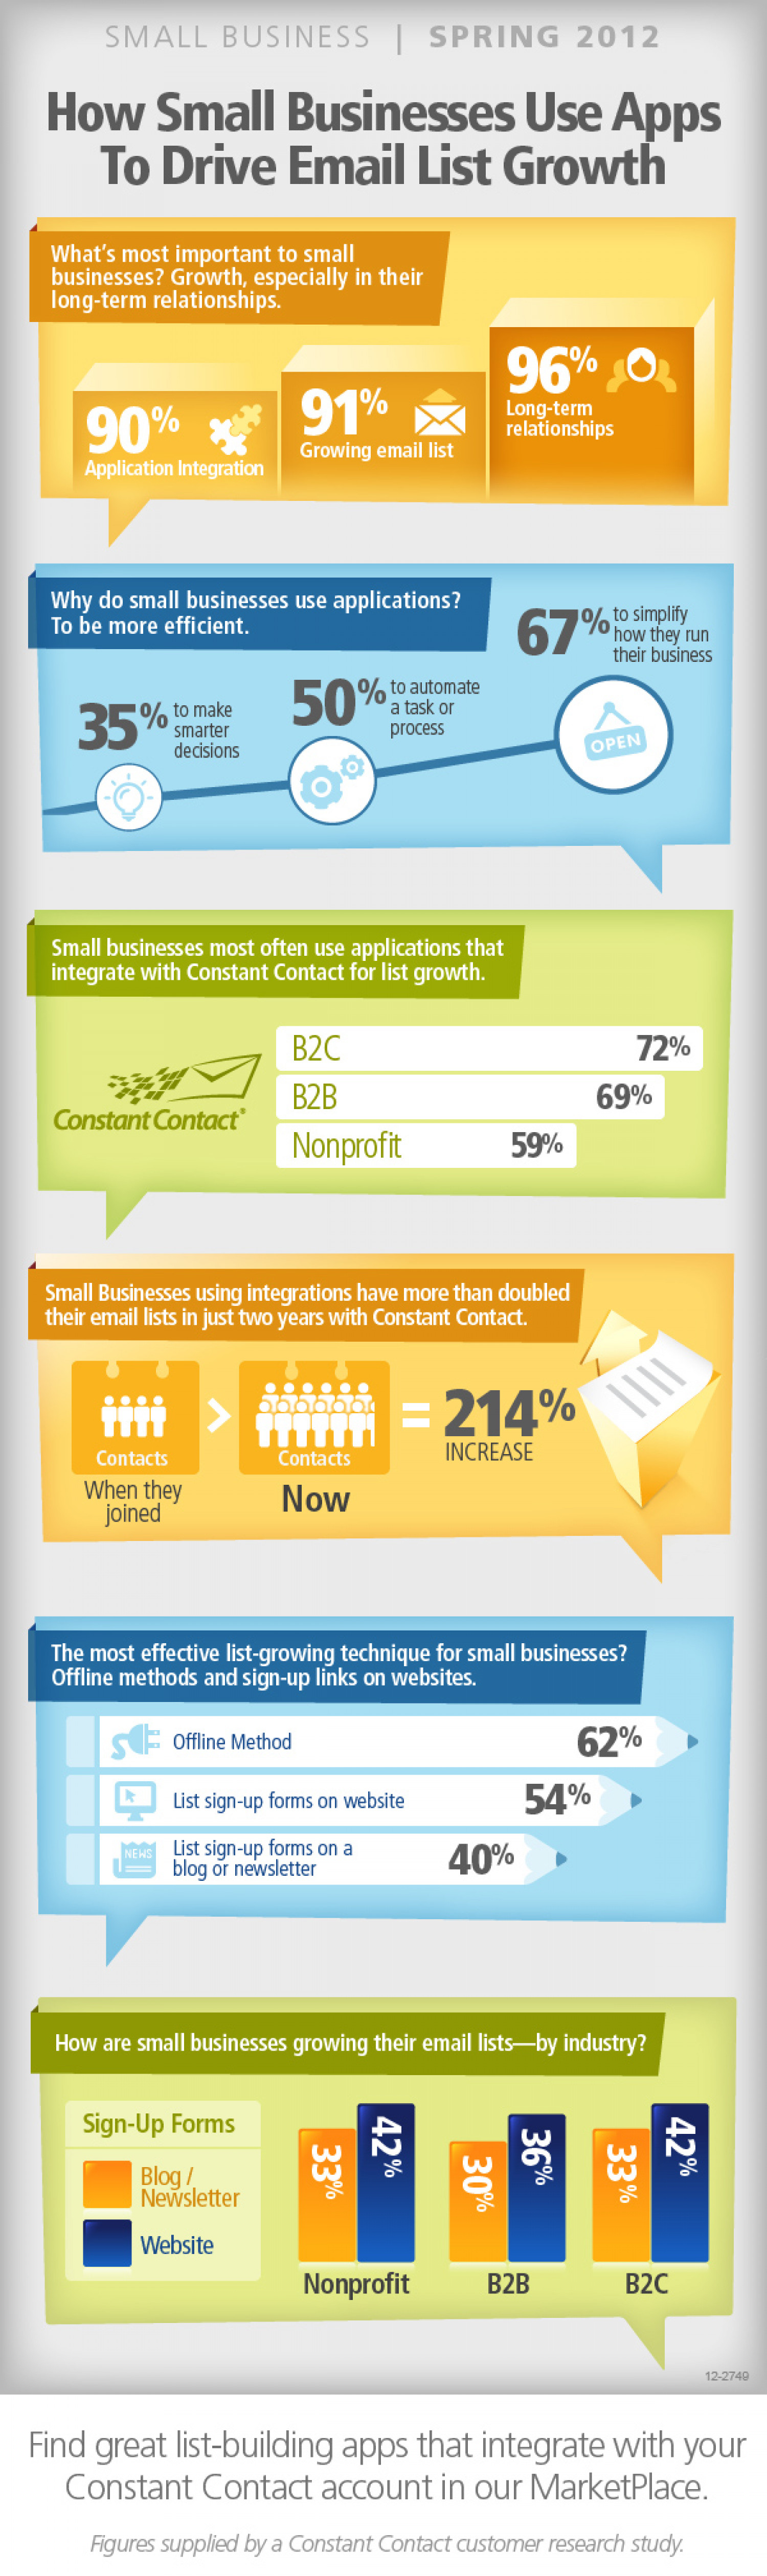 How Small Businesses Use Apps to Drive Email List Growth Infographic